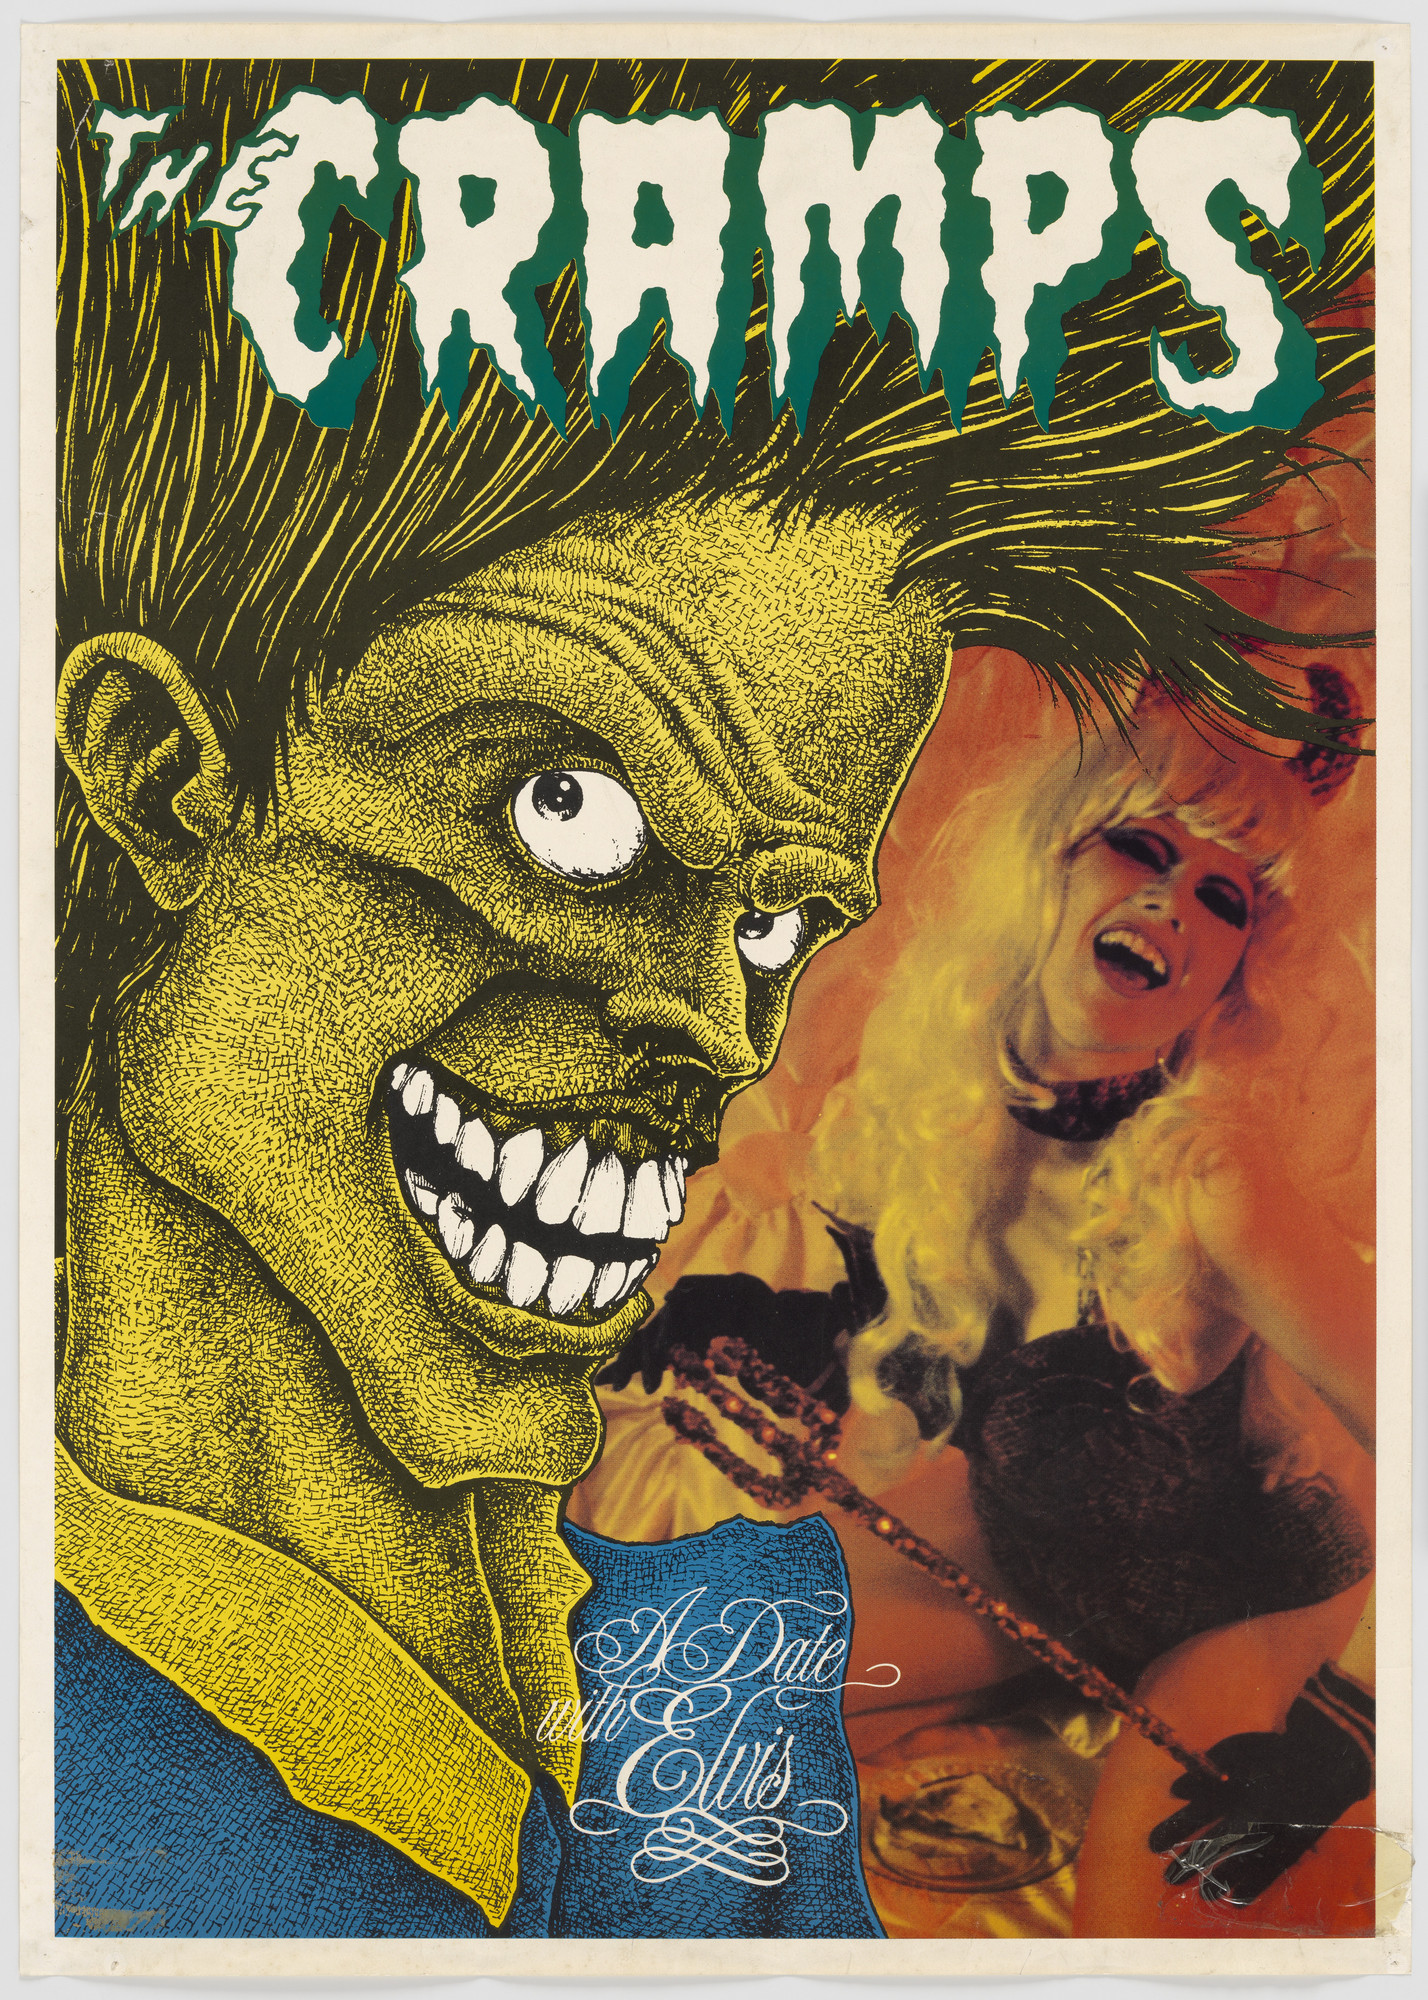 Unknown Designer. The Cramps, A Date with Elvis (Poster for album distributed by Big Beat Records, London). 1986